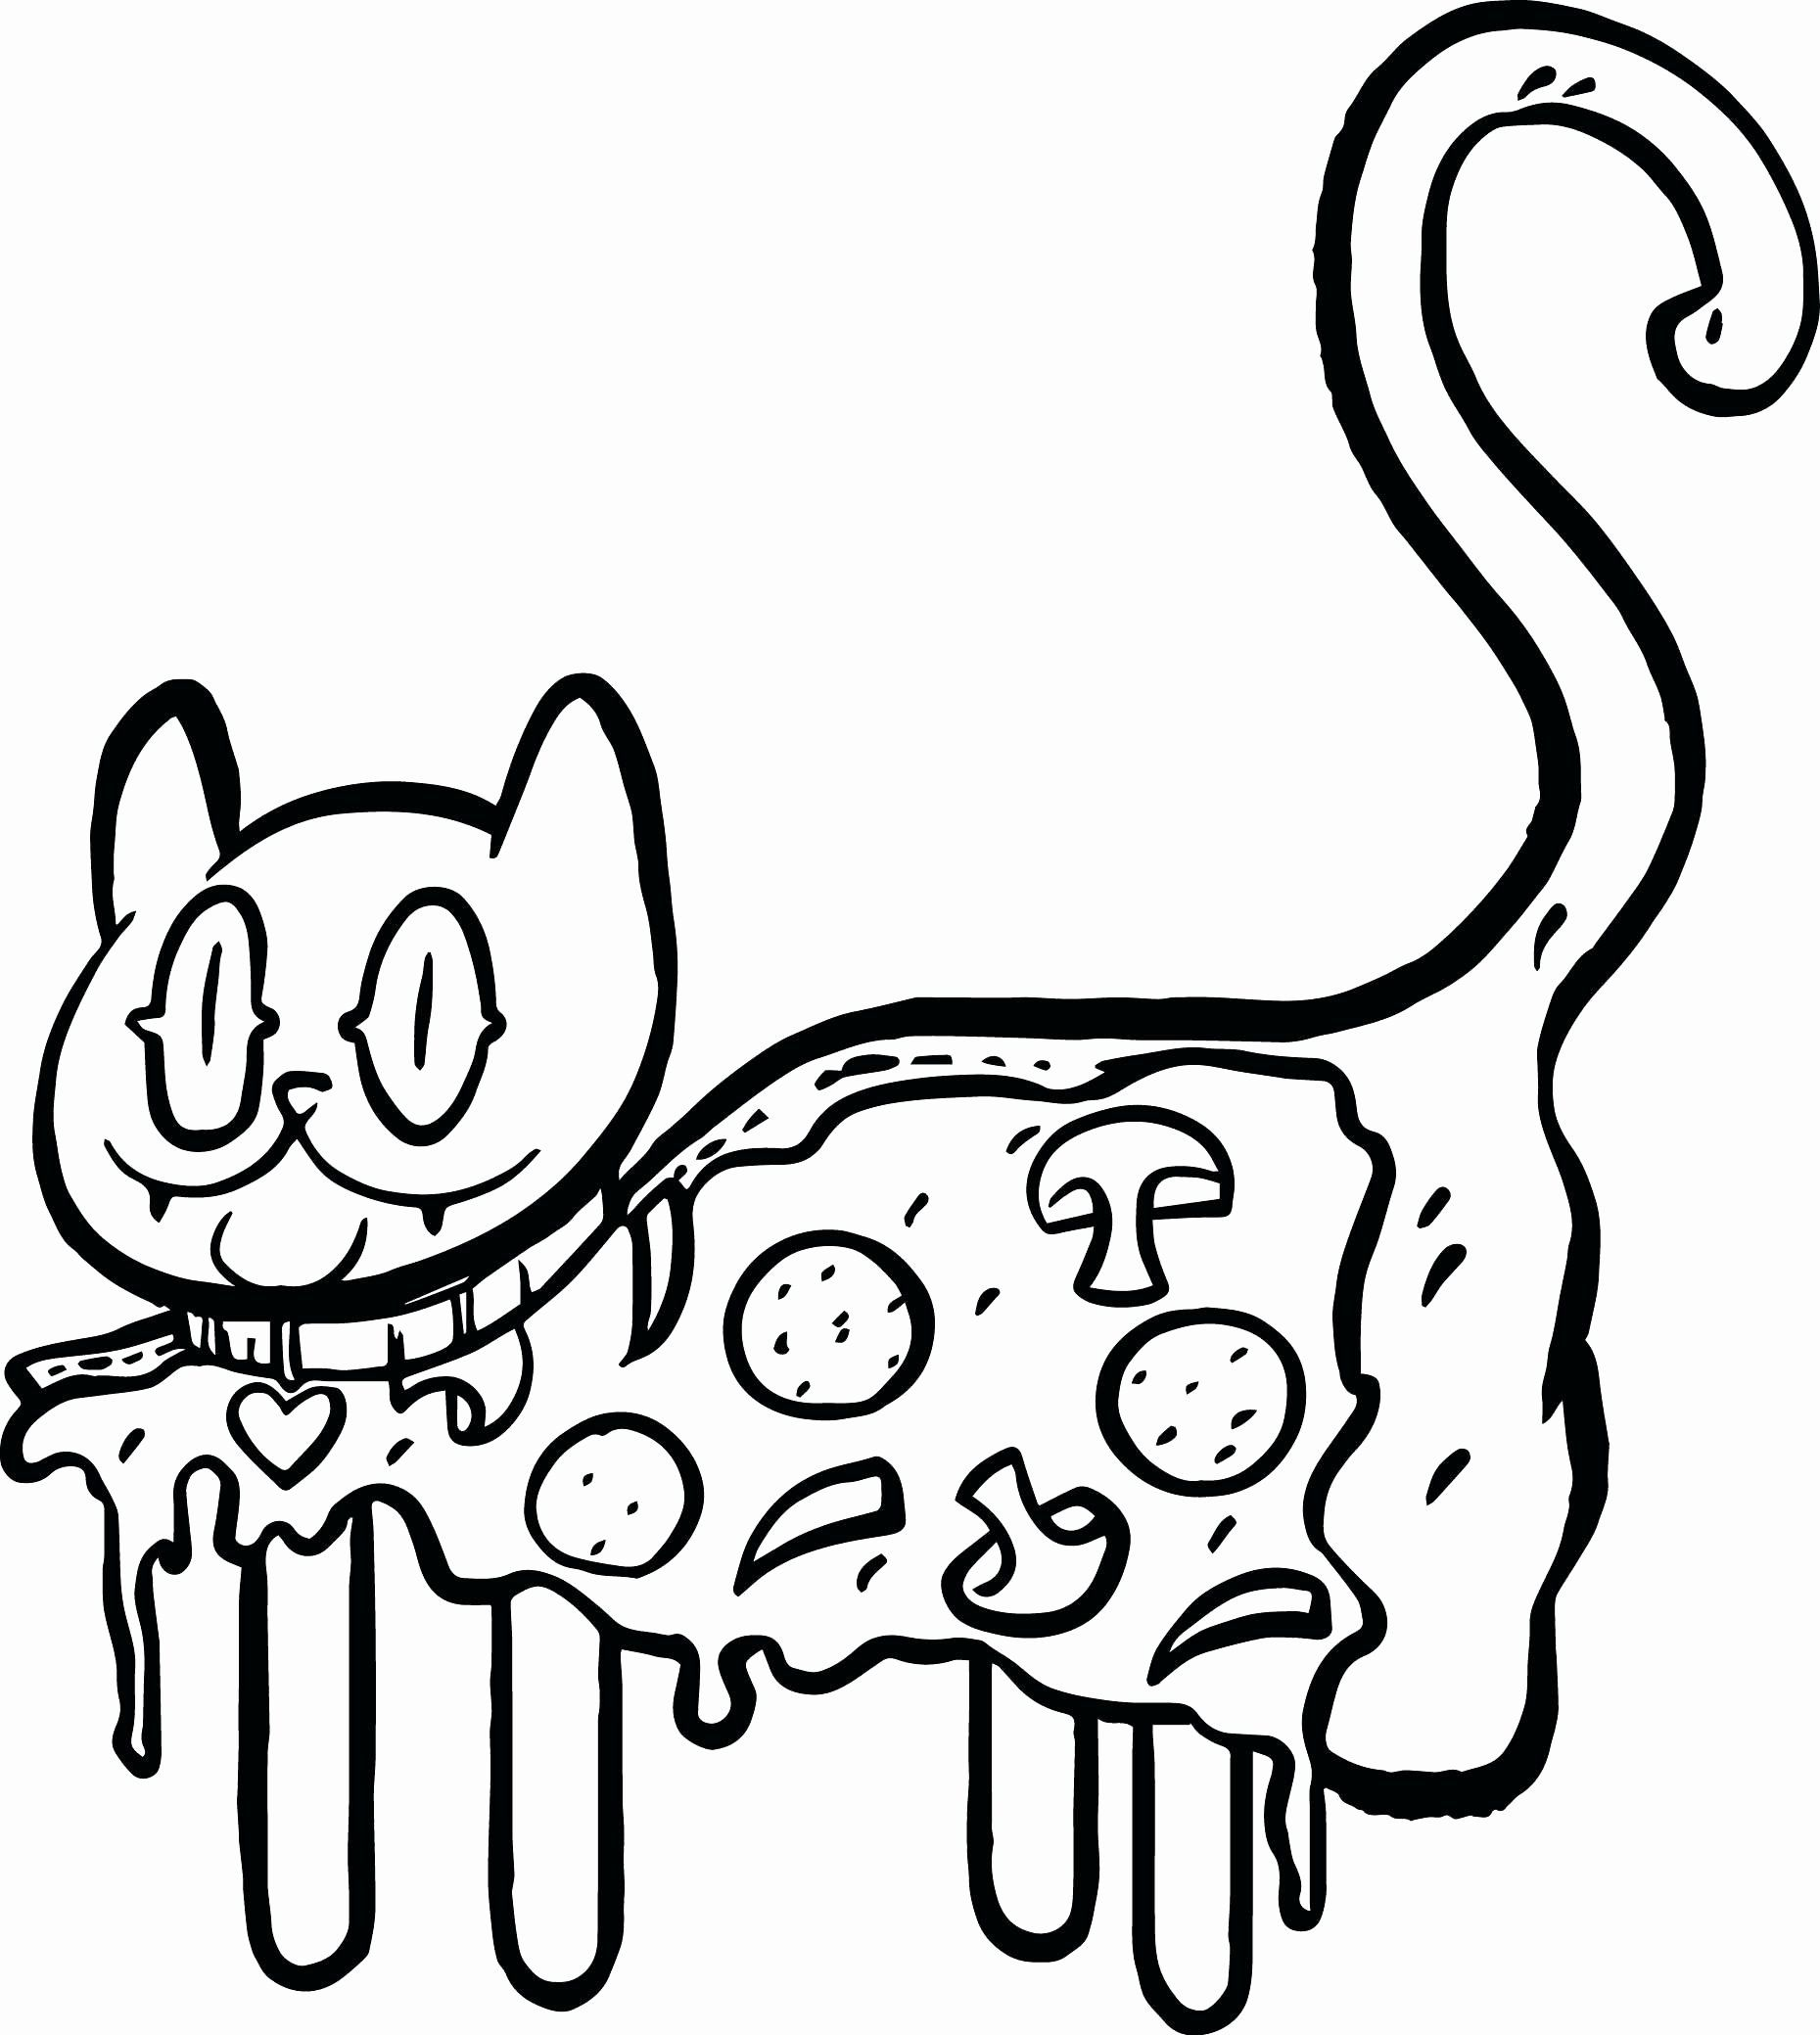 Macaroni And Cheese Coloring Pages Best Of Chuck E Cheese Coloring Pages Mayhemcolor Macaroni And Cheese Macaroni Coloring Pages